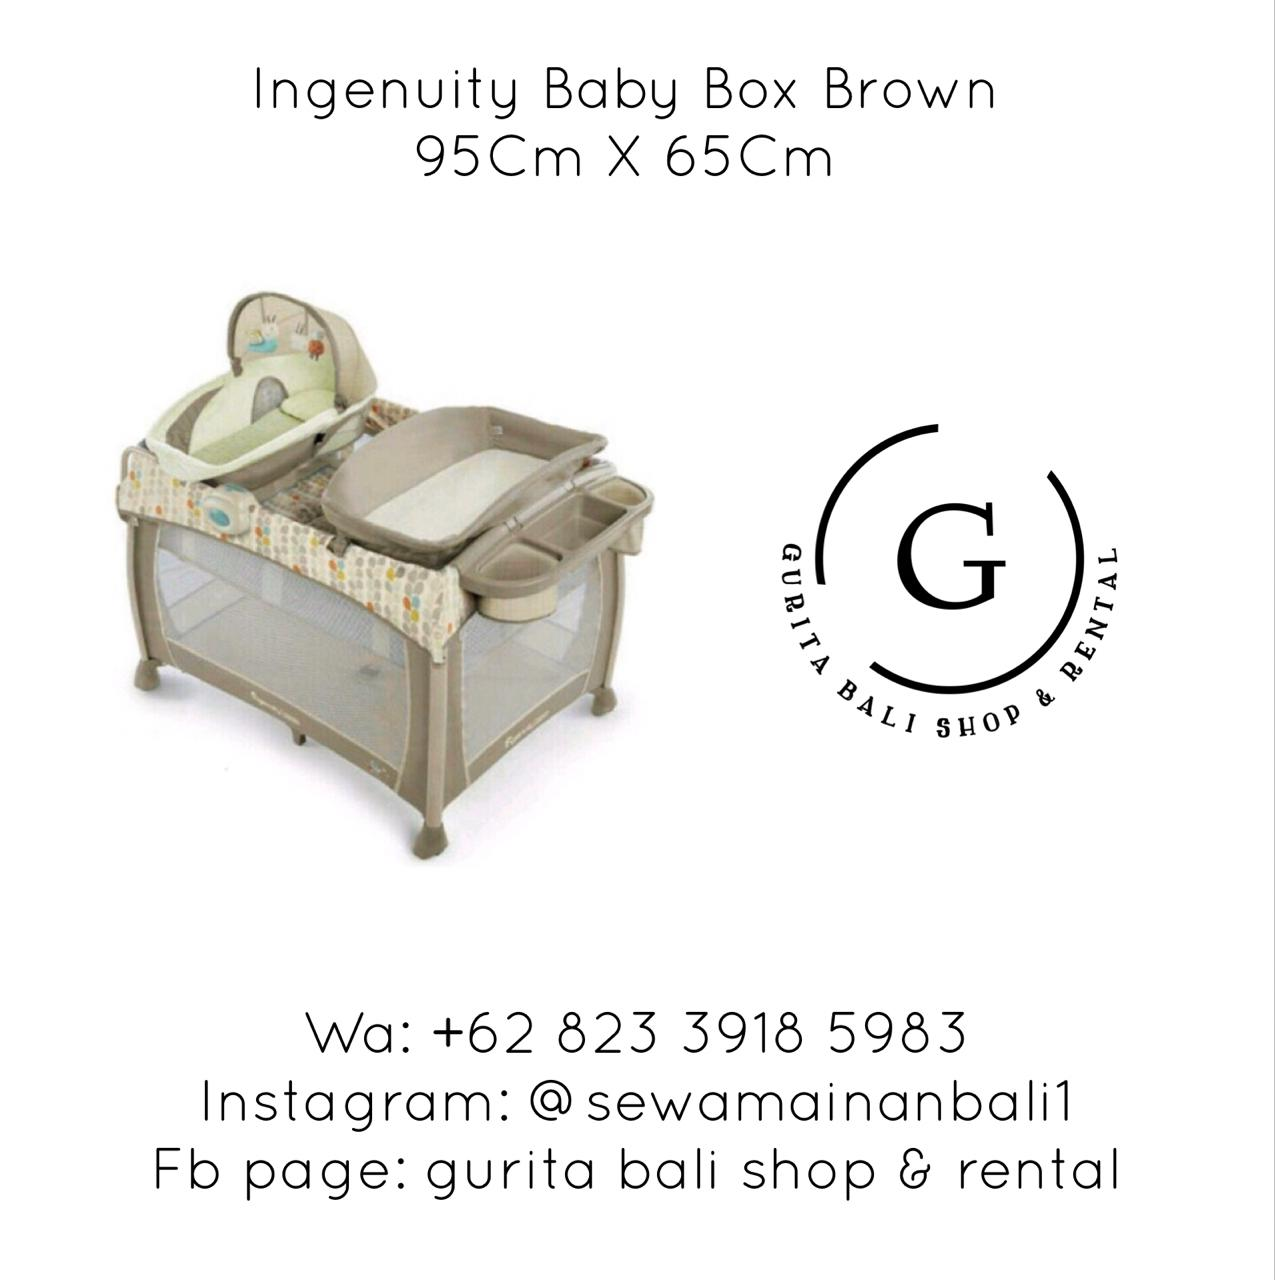 INGENUITY BABY BOX BROWN